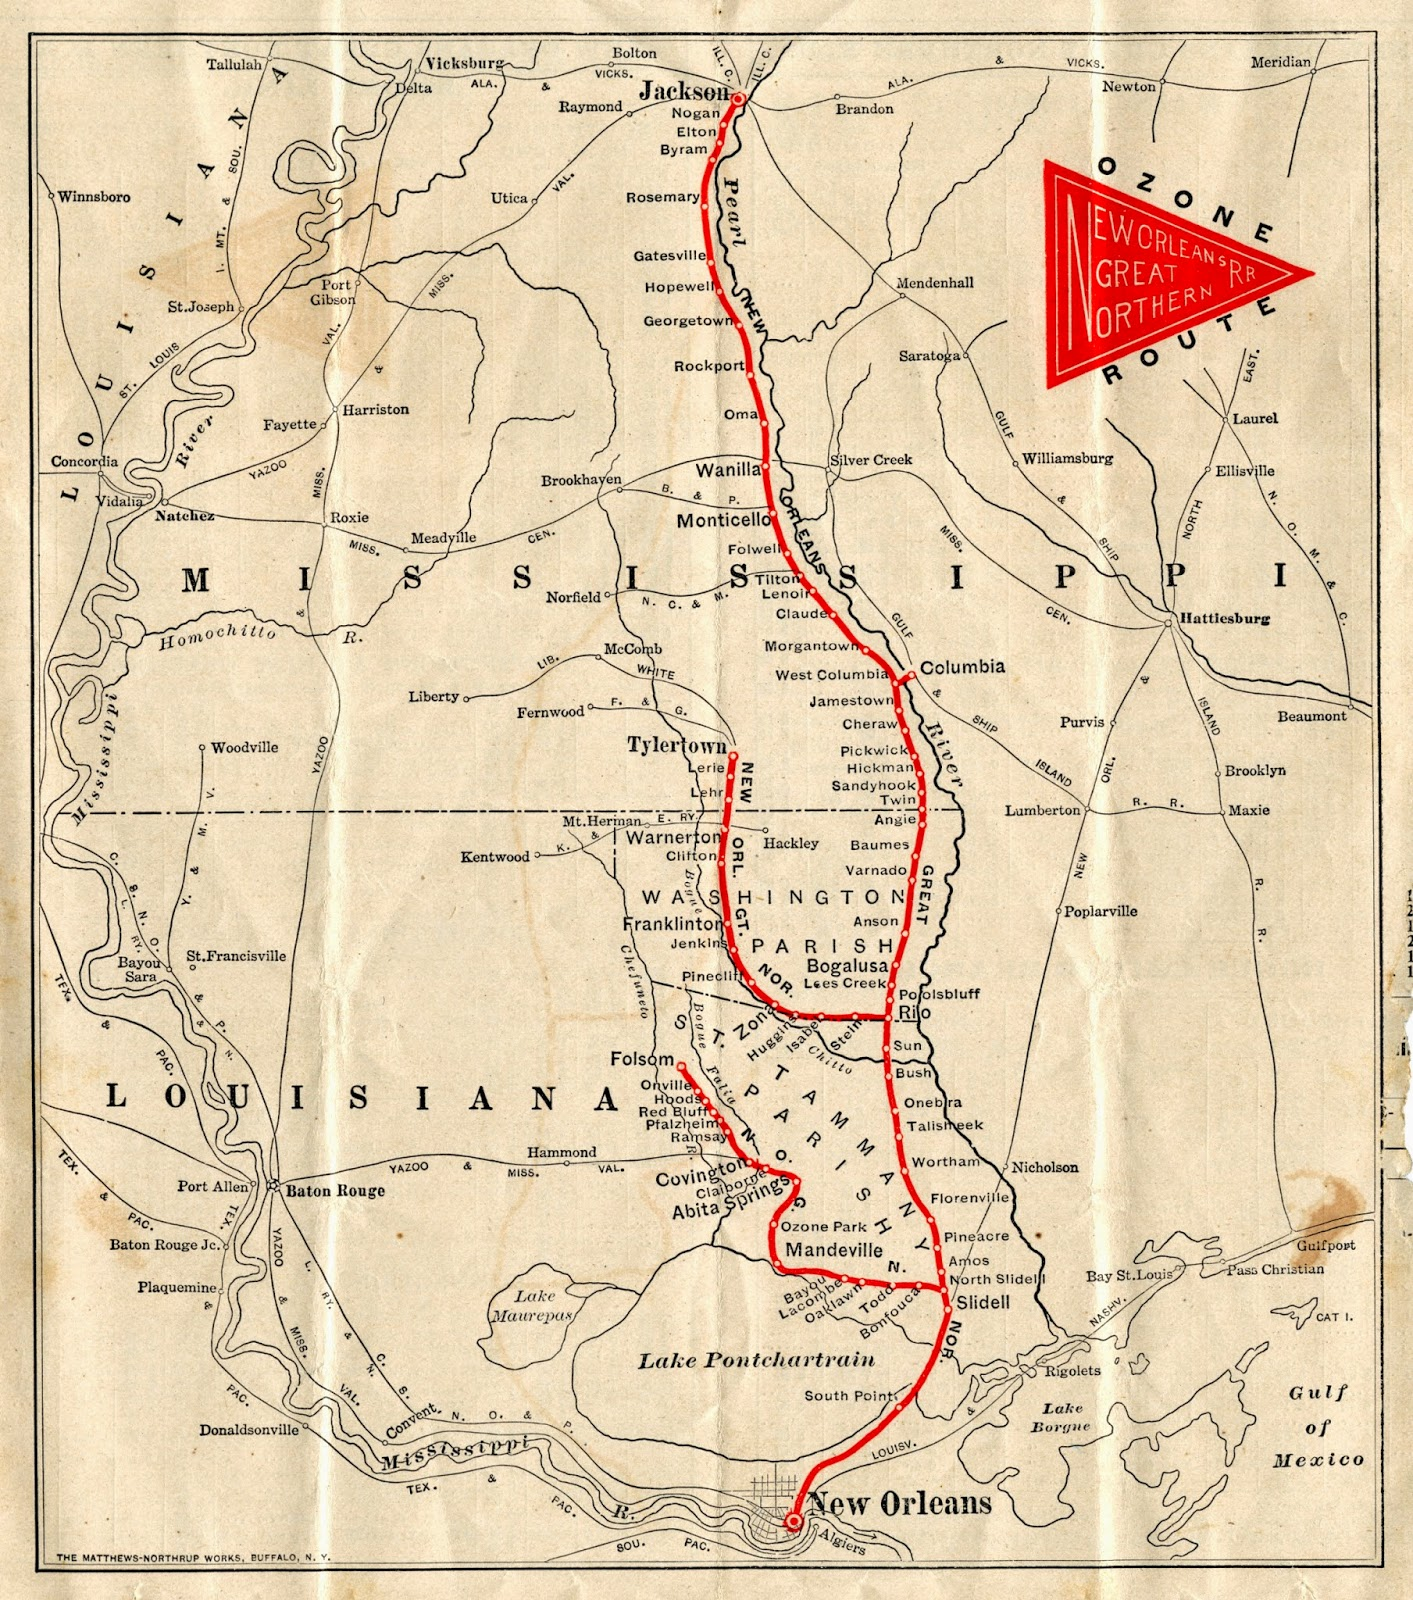 the New Orleans Great Northern RR System Map